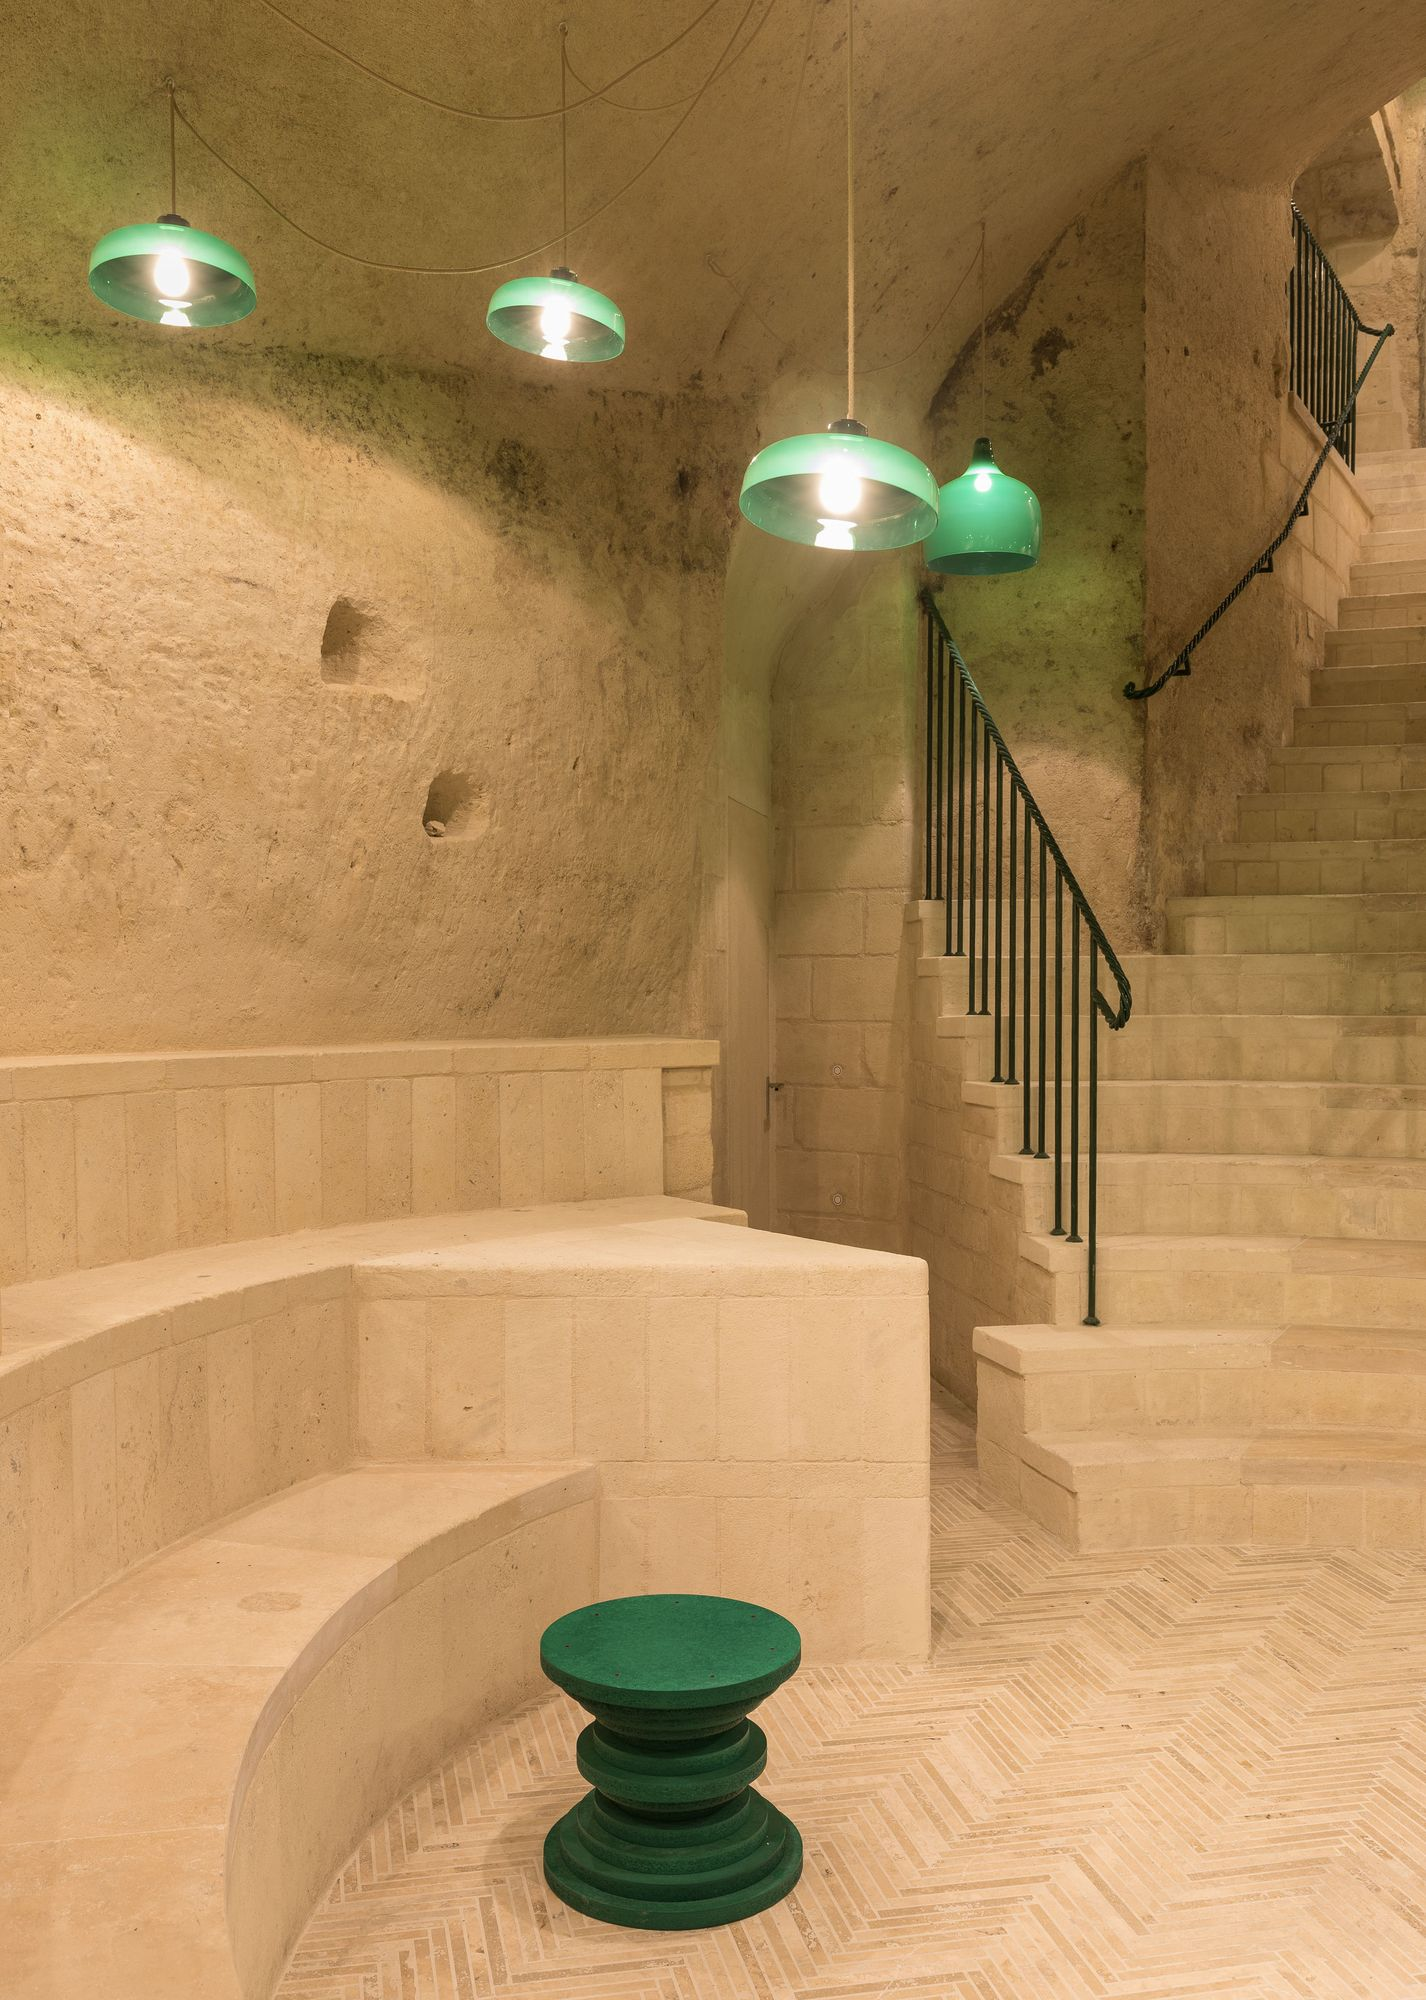 Elegant Underground Winery in Southern Italy